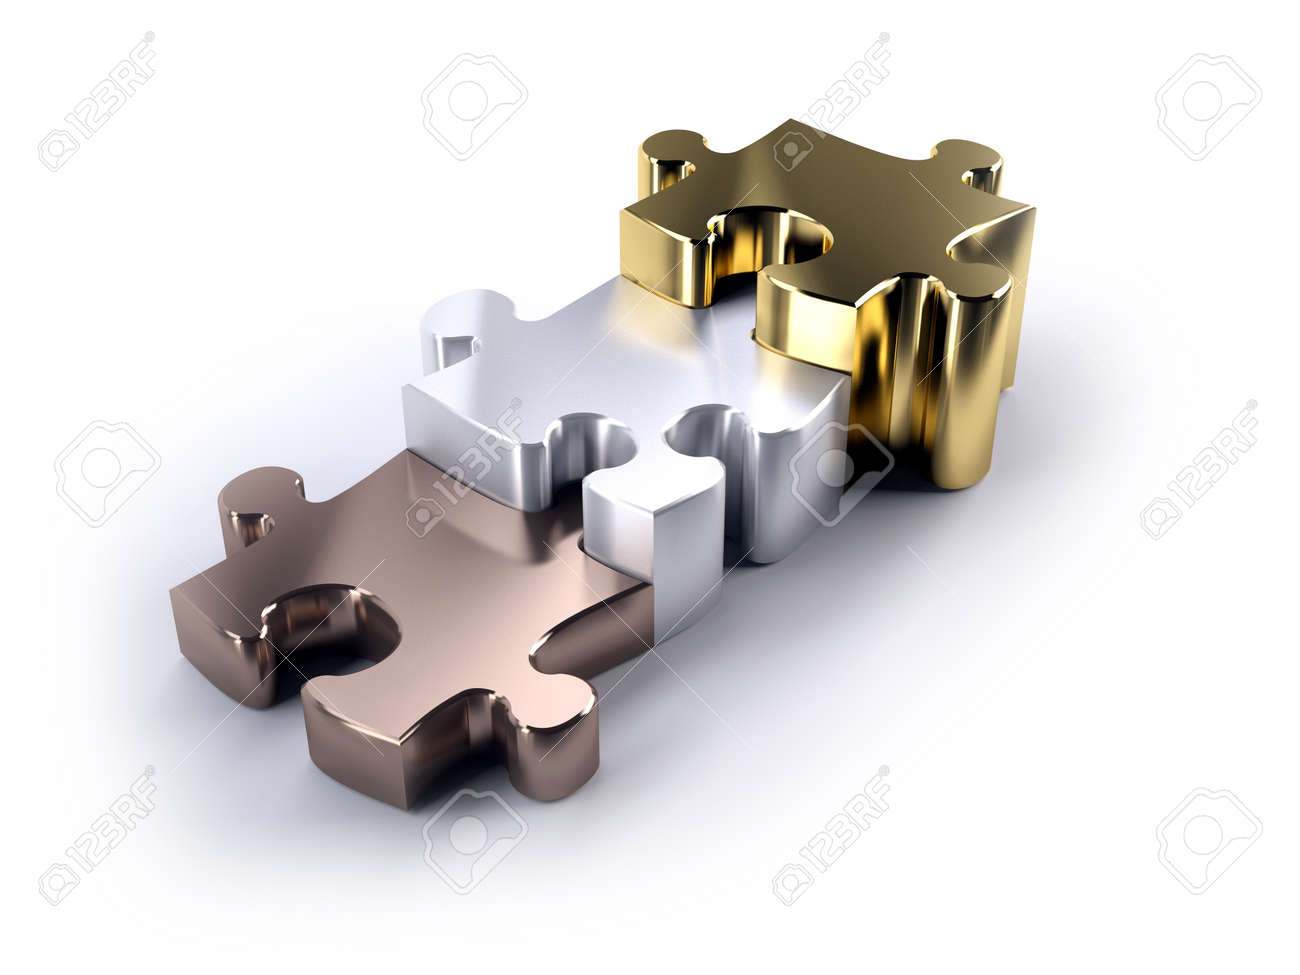 Thre jigsaw peices bronze silver and gold as a poduim concept of winning - 16385243